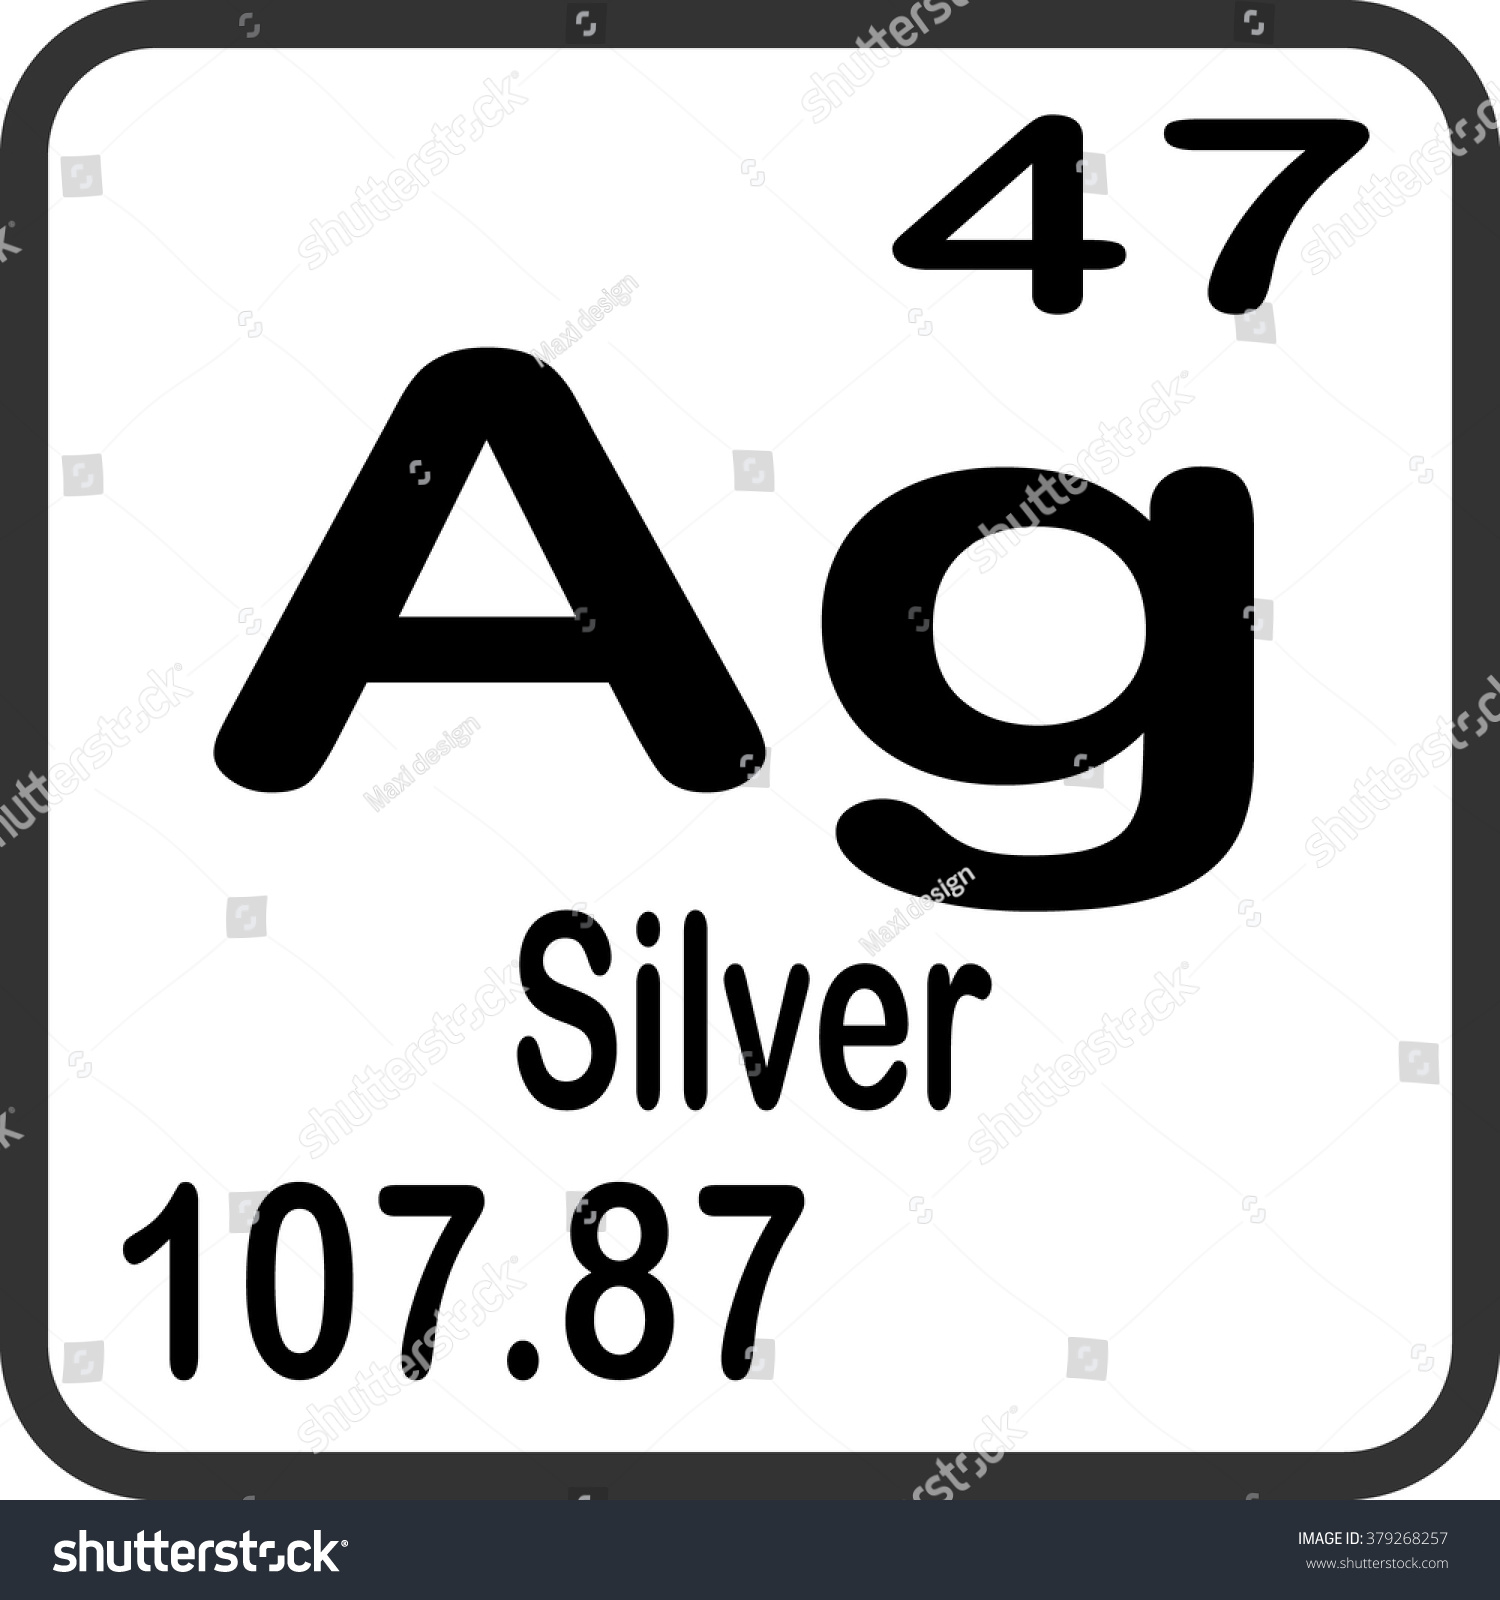 Periodic table elements silver stock vector 379268257 shutterstock urtaz Gallery